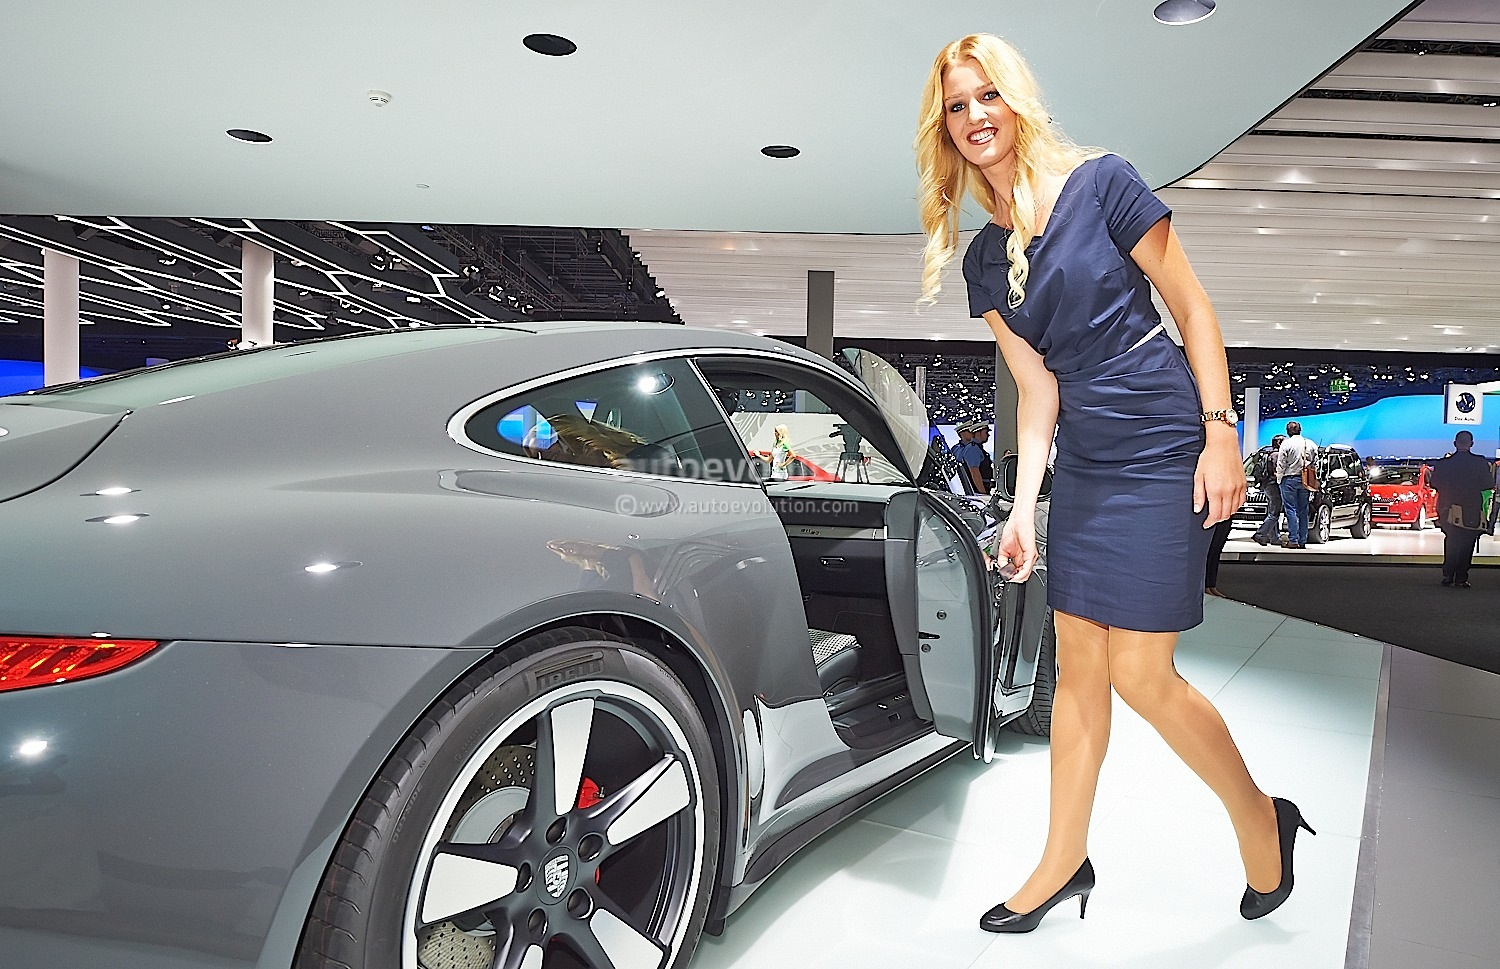 911 Carrera Gts >> Frankfurt 2013: Sexy Girl Makes 911 50th Edition Look Good ...